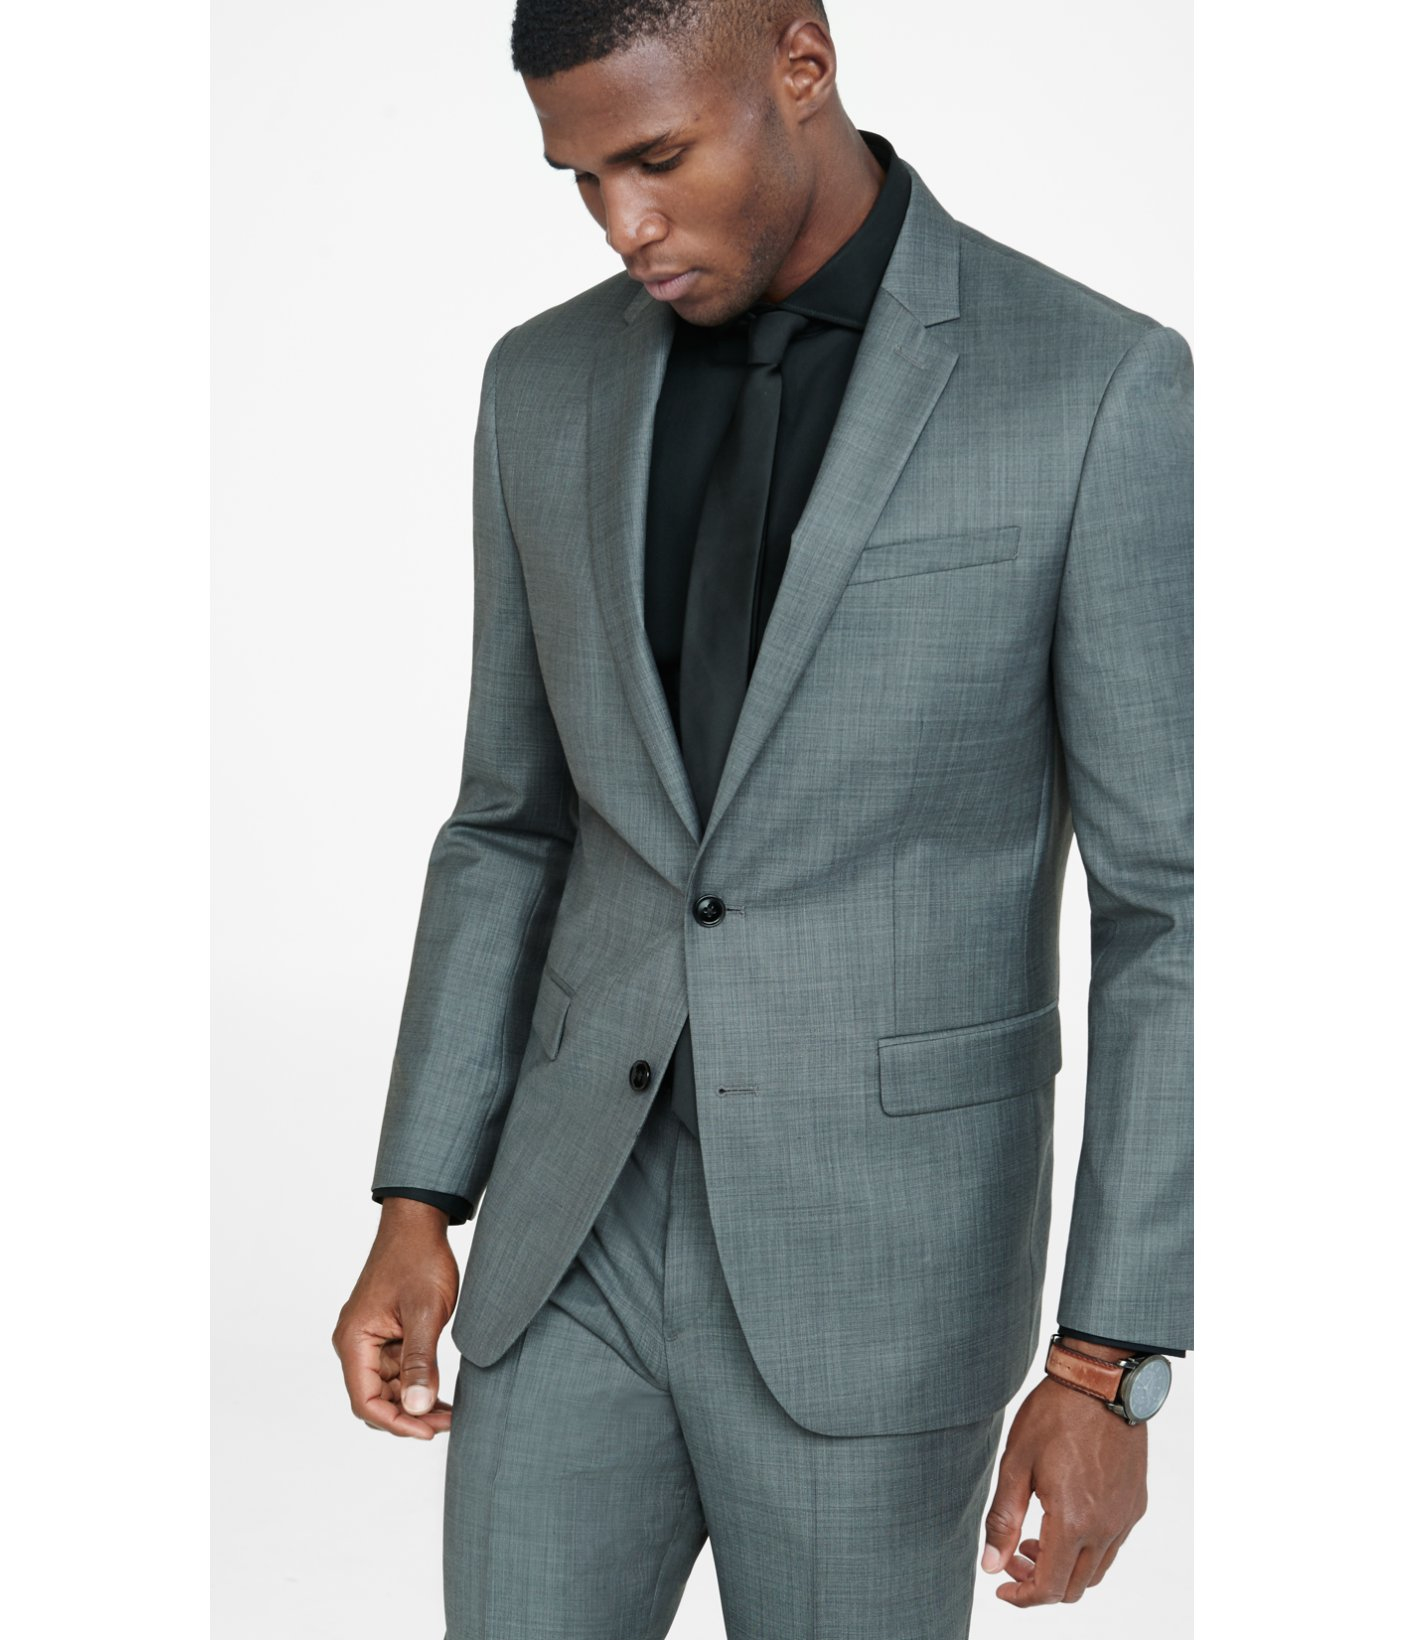 Dark Grey Suit Jacket - Most Popular Jacket 2017